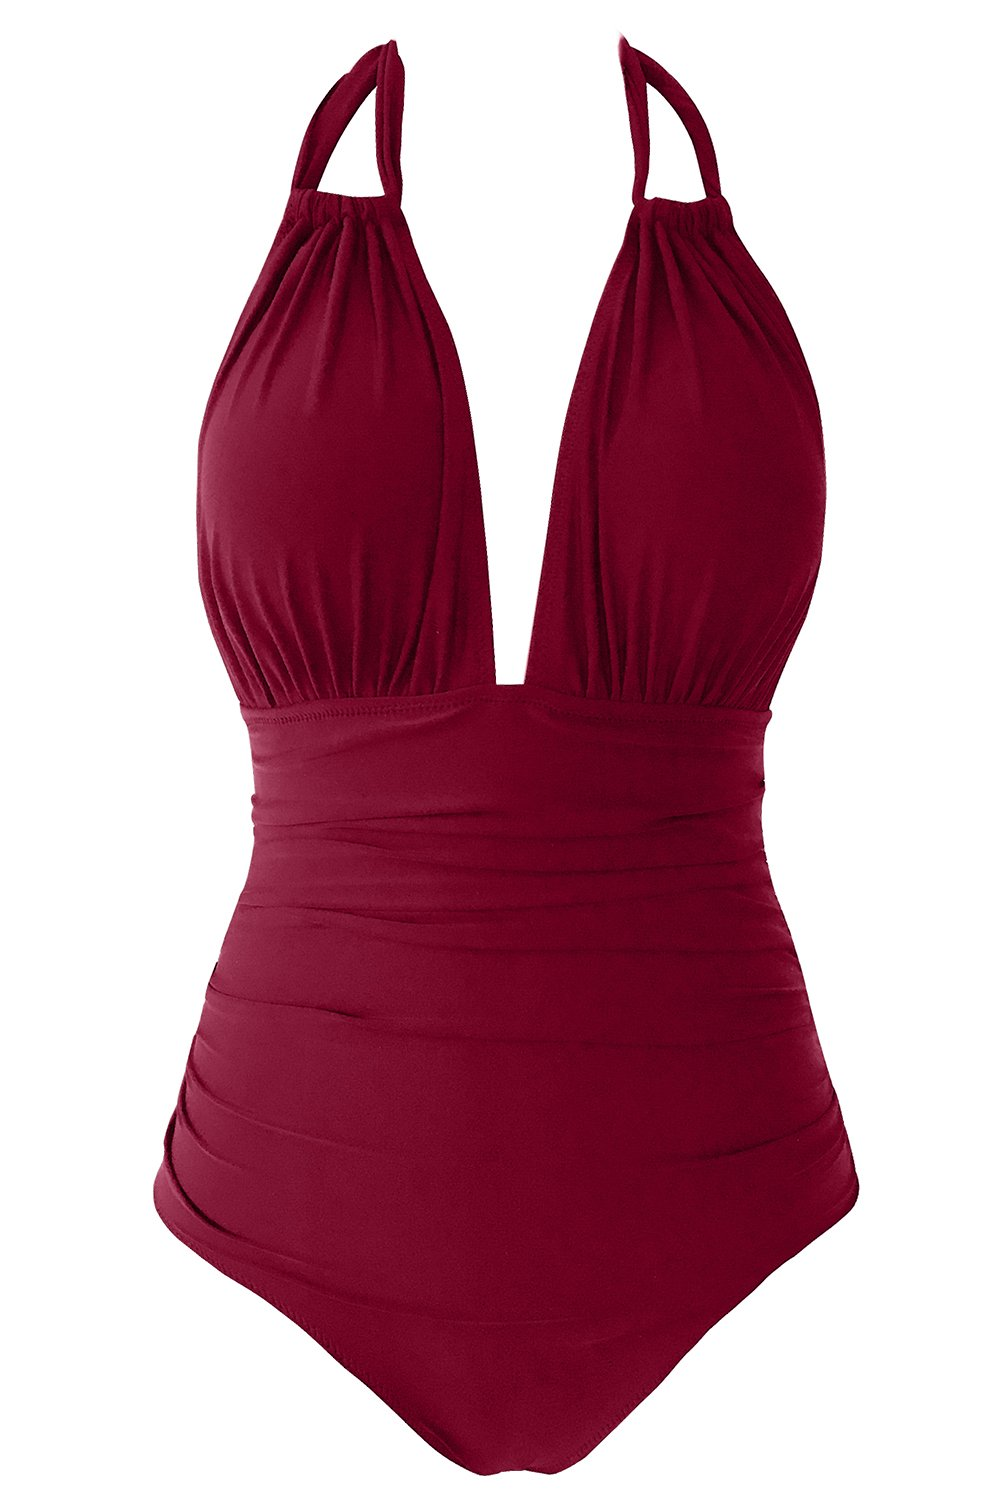 Seaselfie Vintage High Waisted Convertible Halter One-Piece Padding Swimsuit, Wine Red, Small